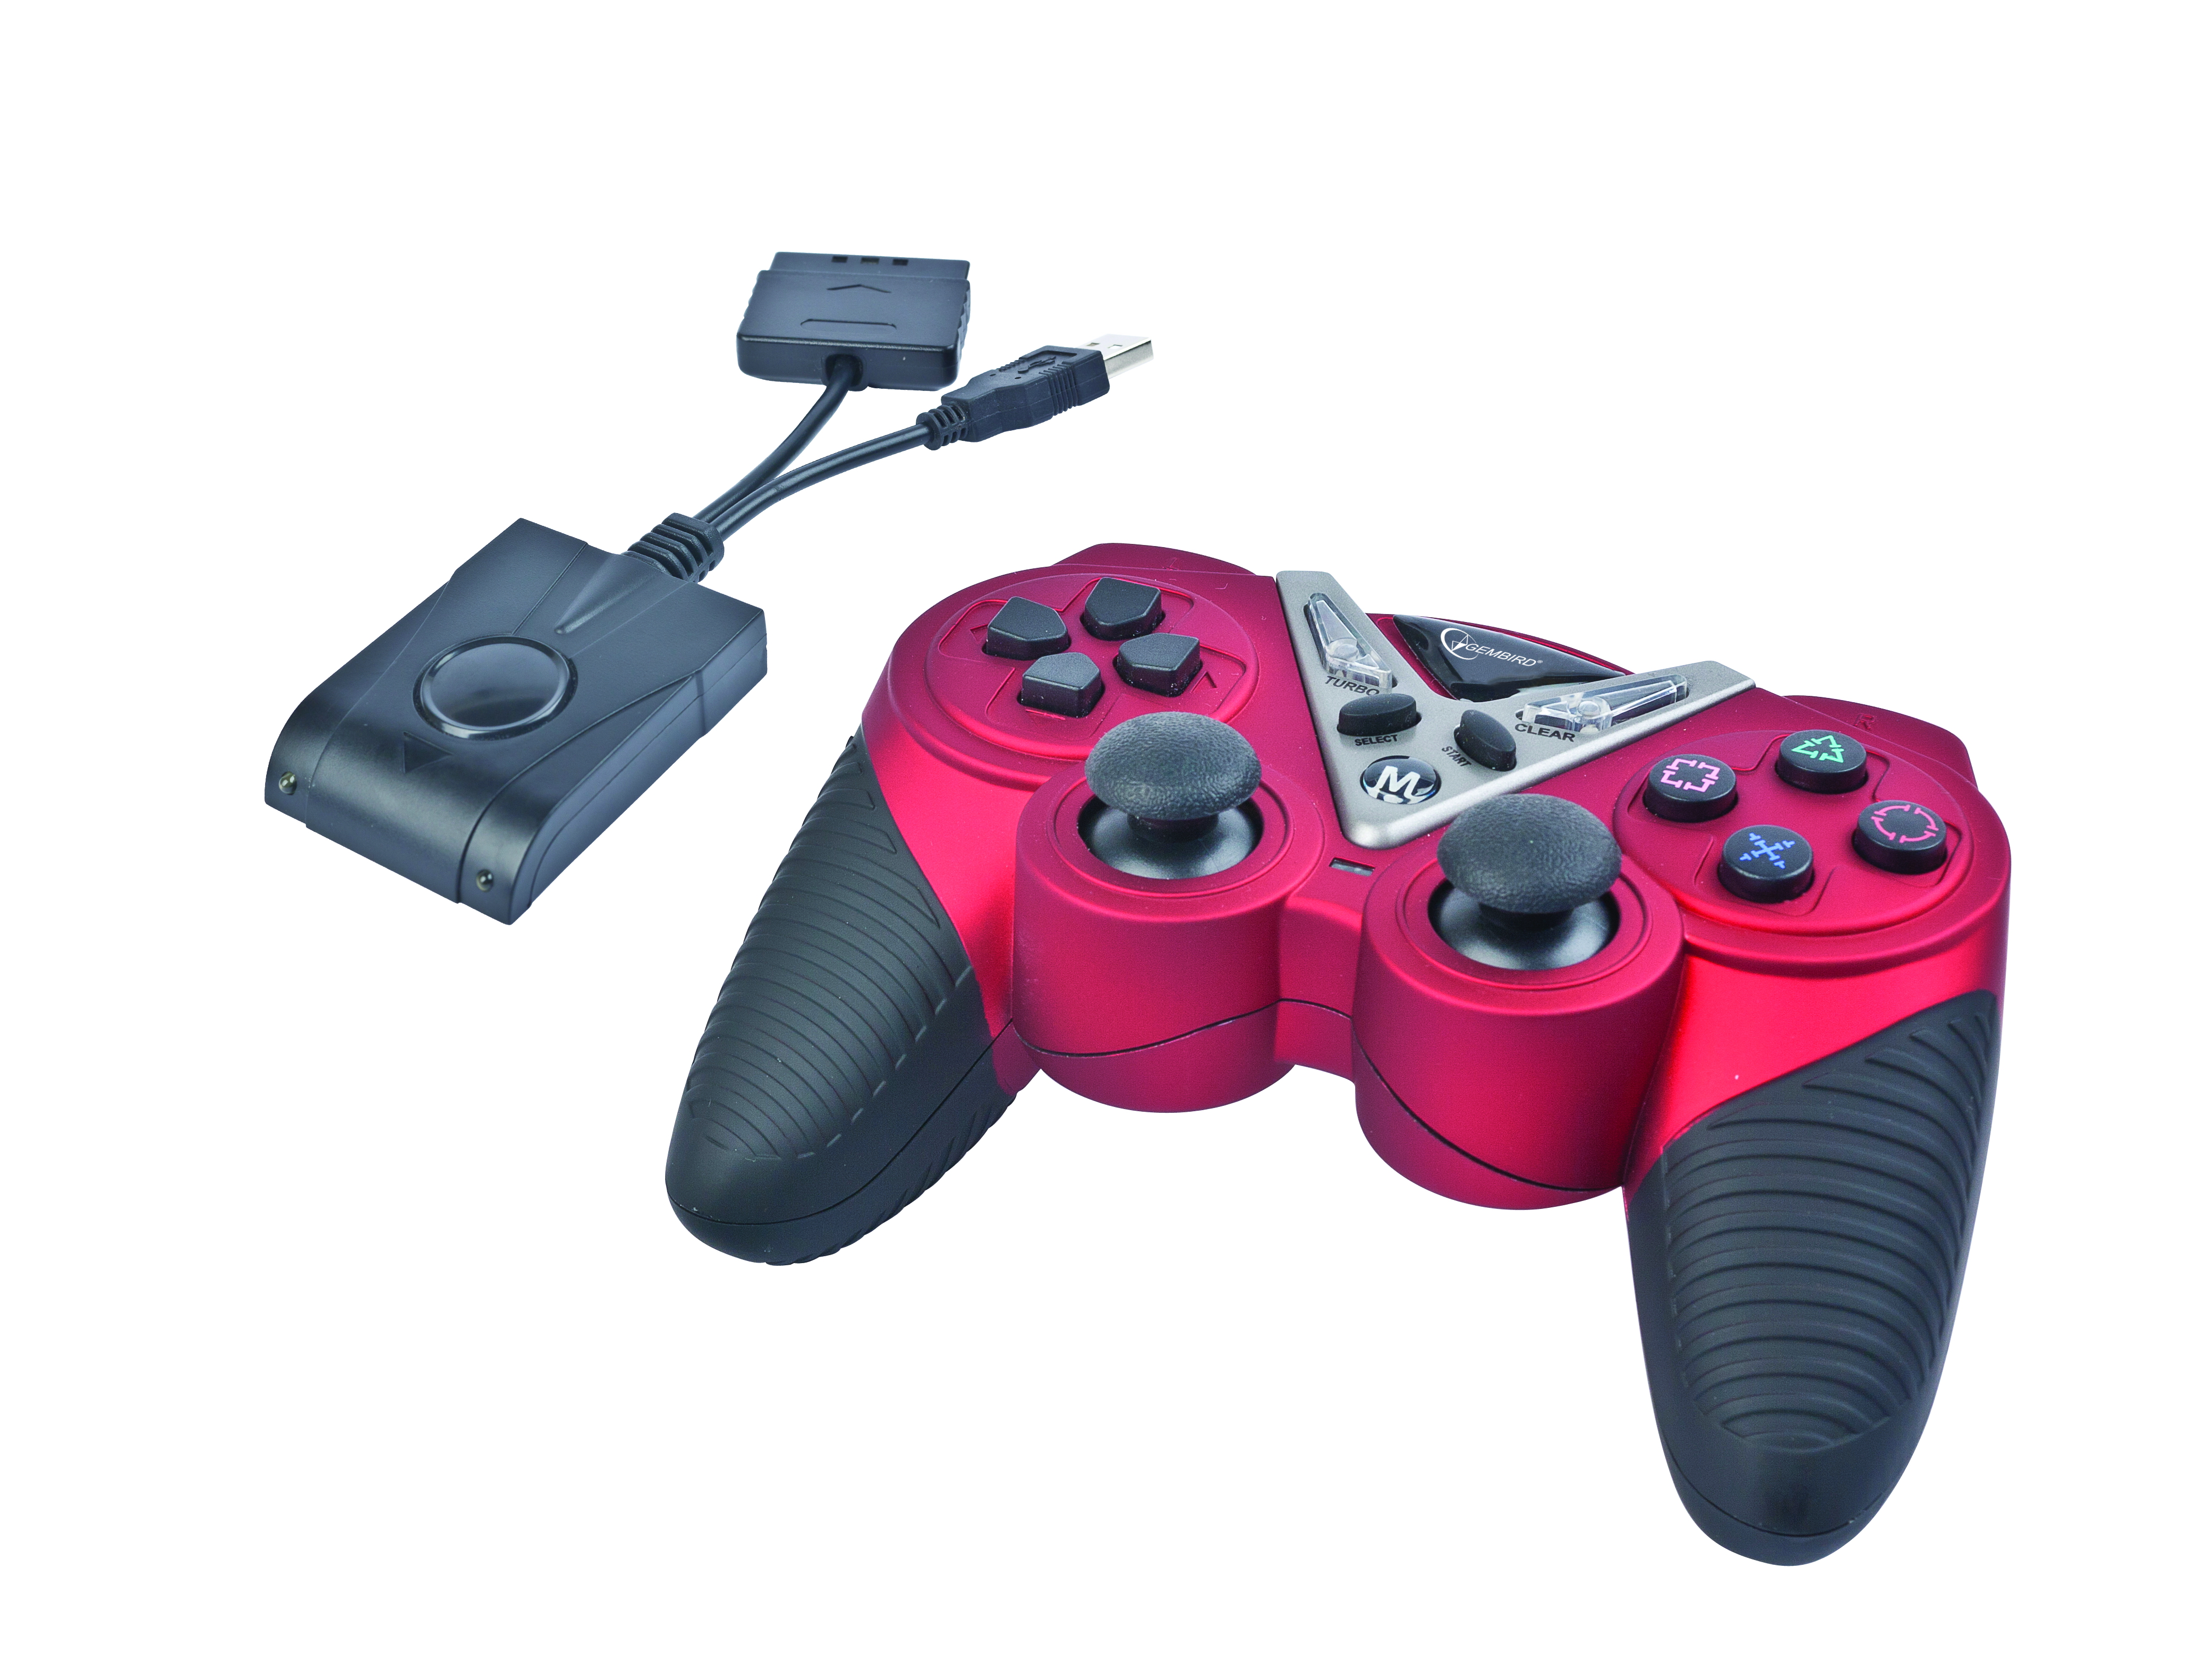 Damaged or outdated Gamepad / Joystick drivers